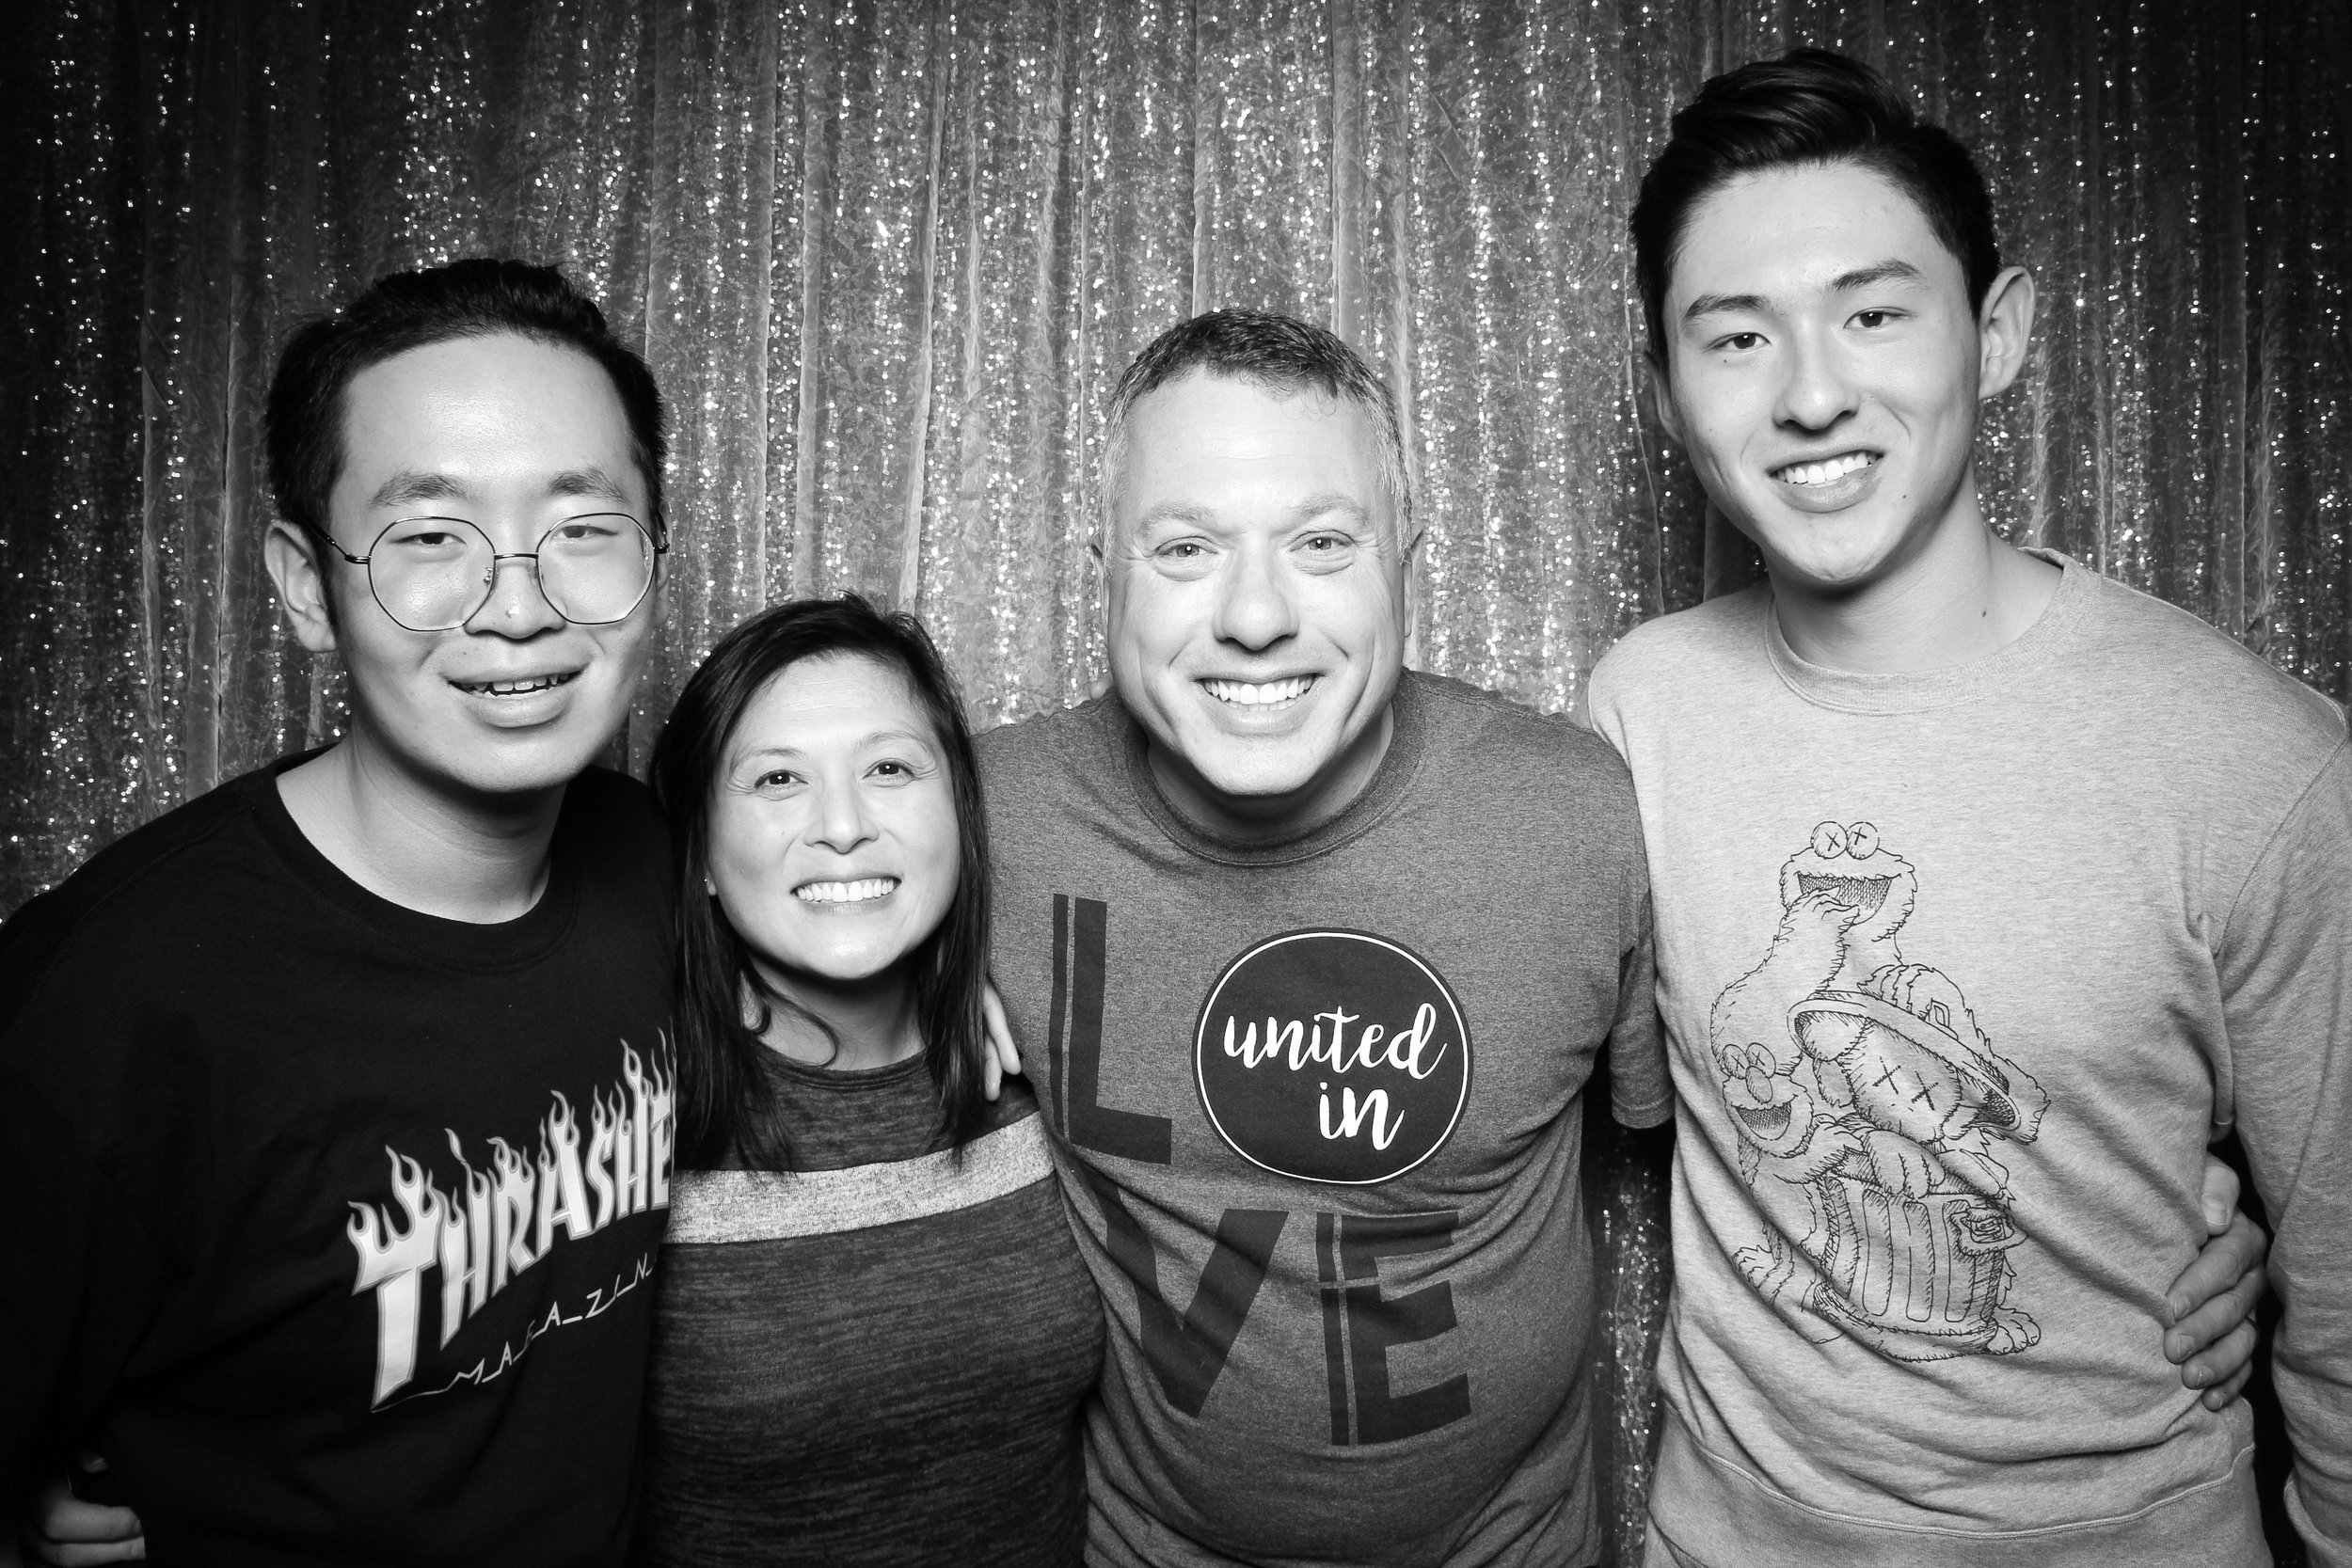 Chicago_Vintage_Wedding_Photobooth_Downers_Grove_25.jpg